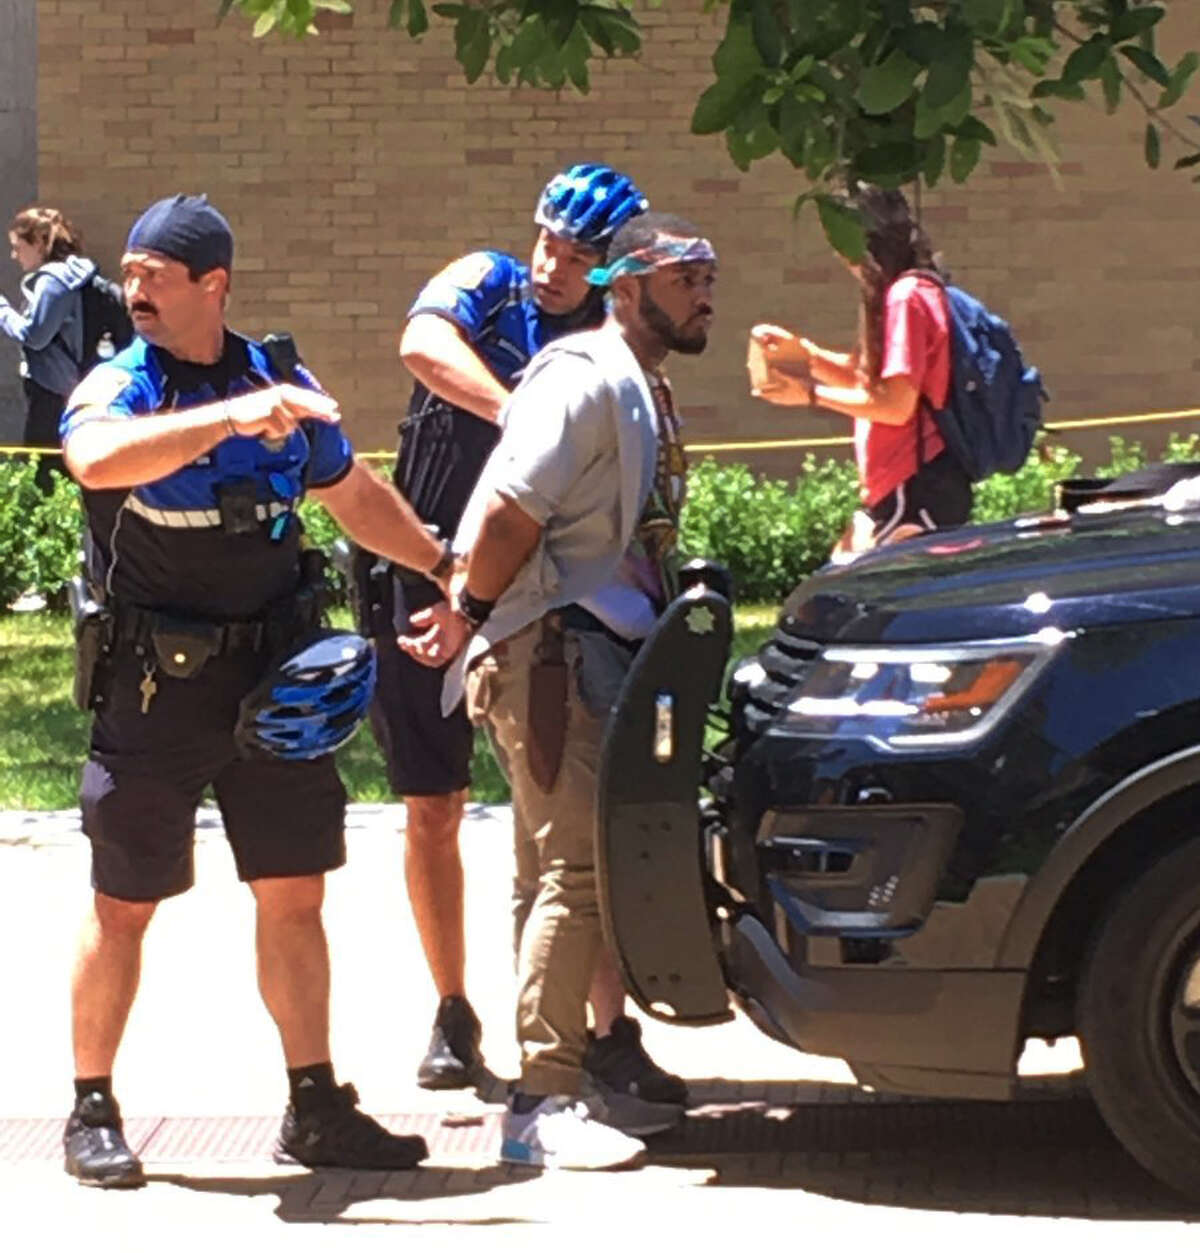 A man is arrested after a fatal stabbing attack on the University of Texas campus in Austin, Texas, Monday, May 1, 2017. Police later named the suspect as Kendrex J. White.